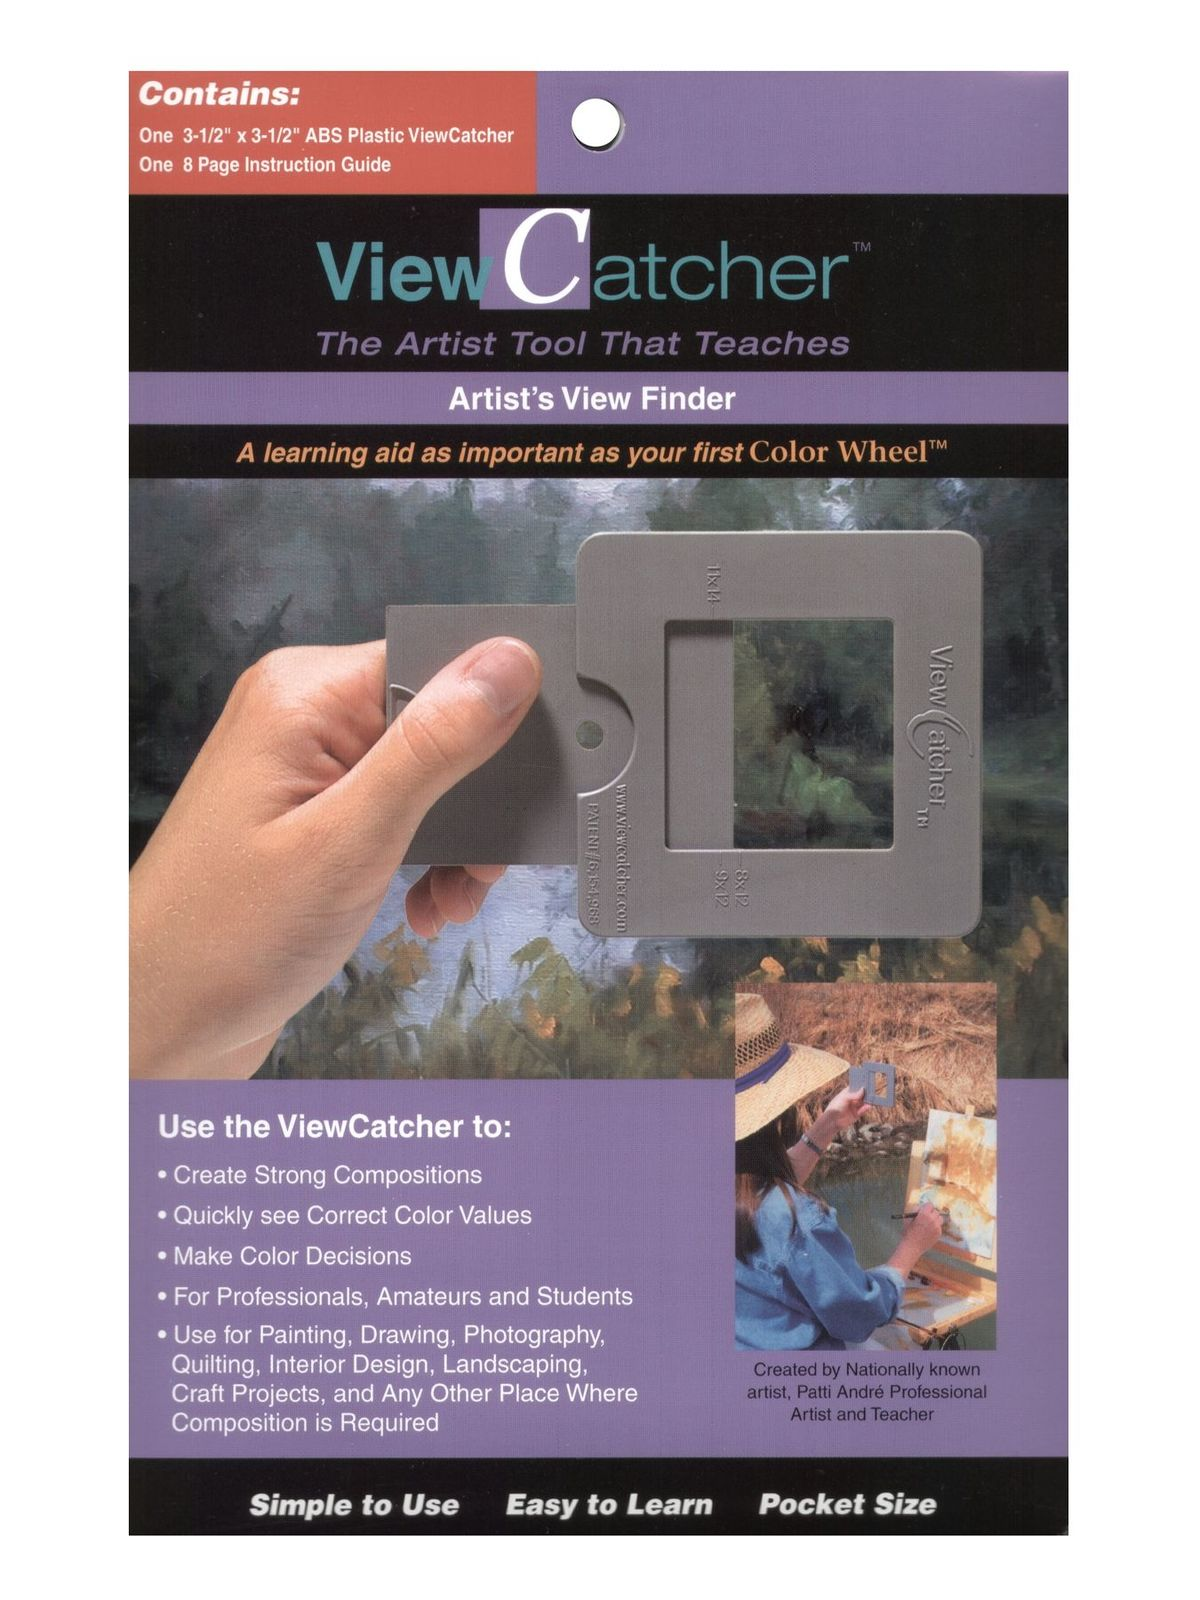 The Color Wheel Company - ViewCatcher Artist's View Finder